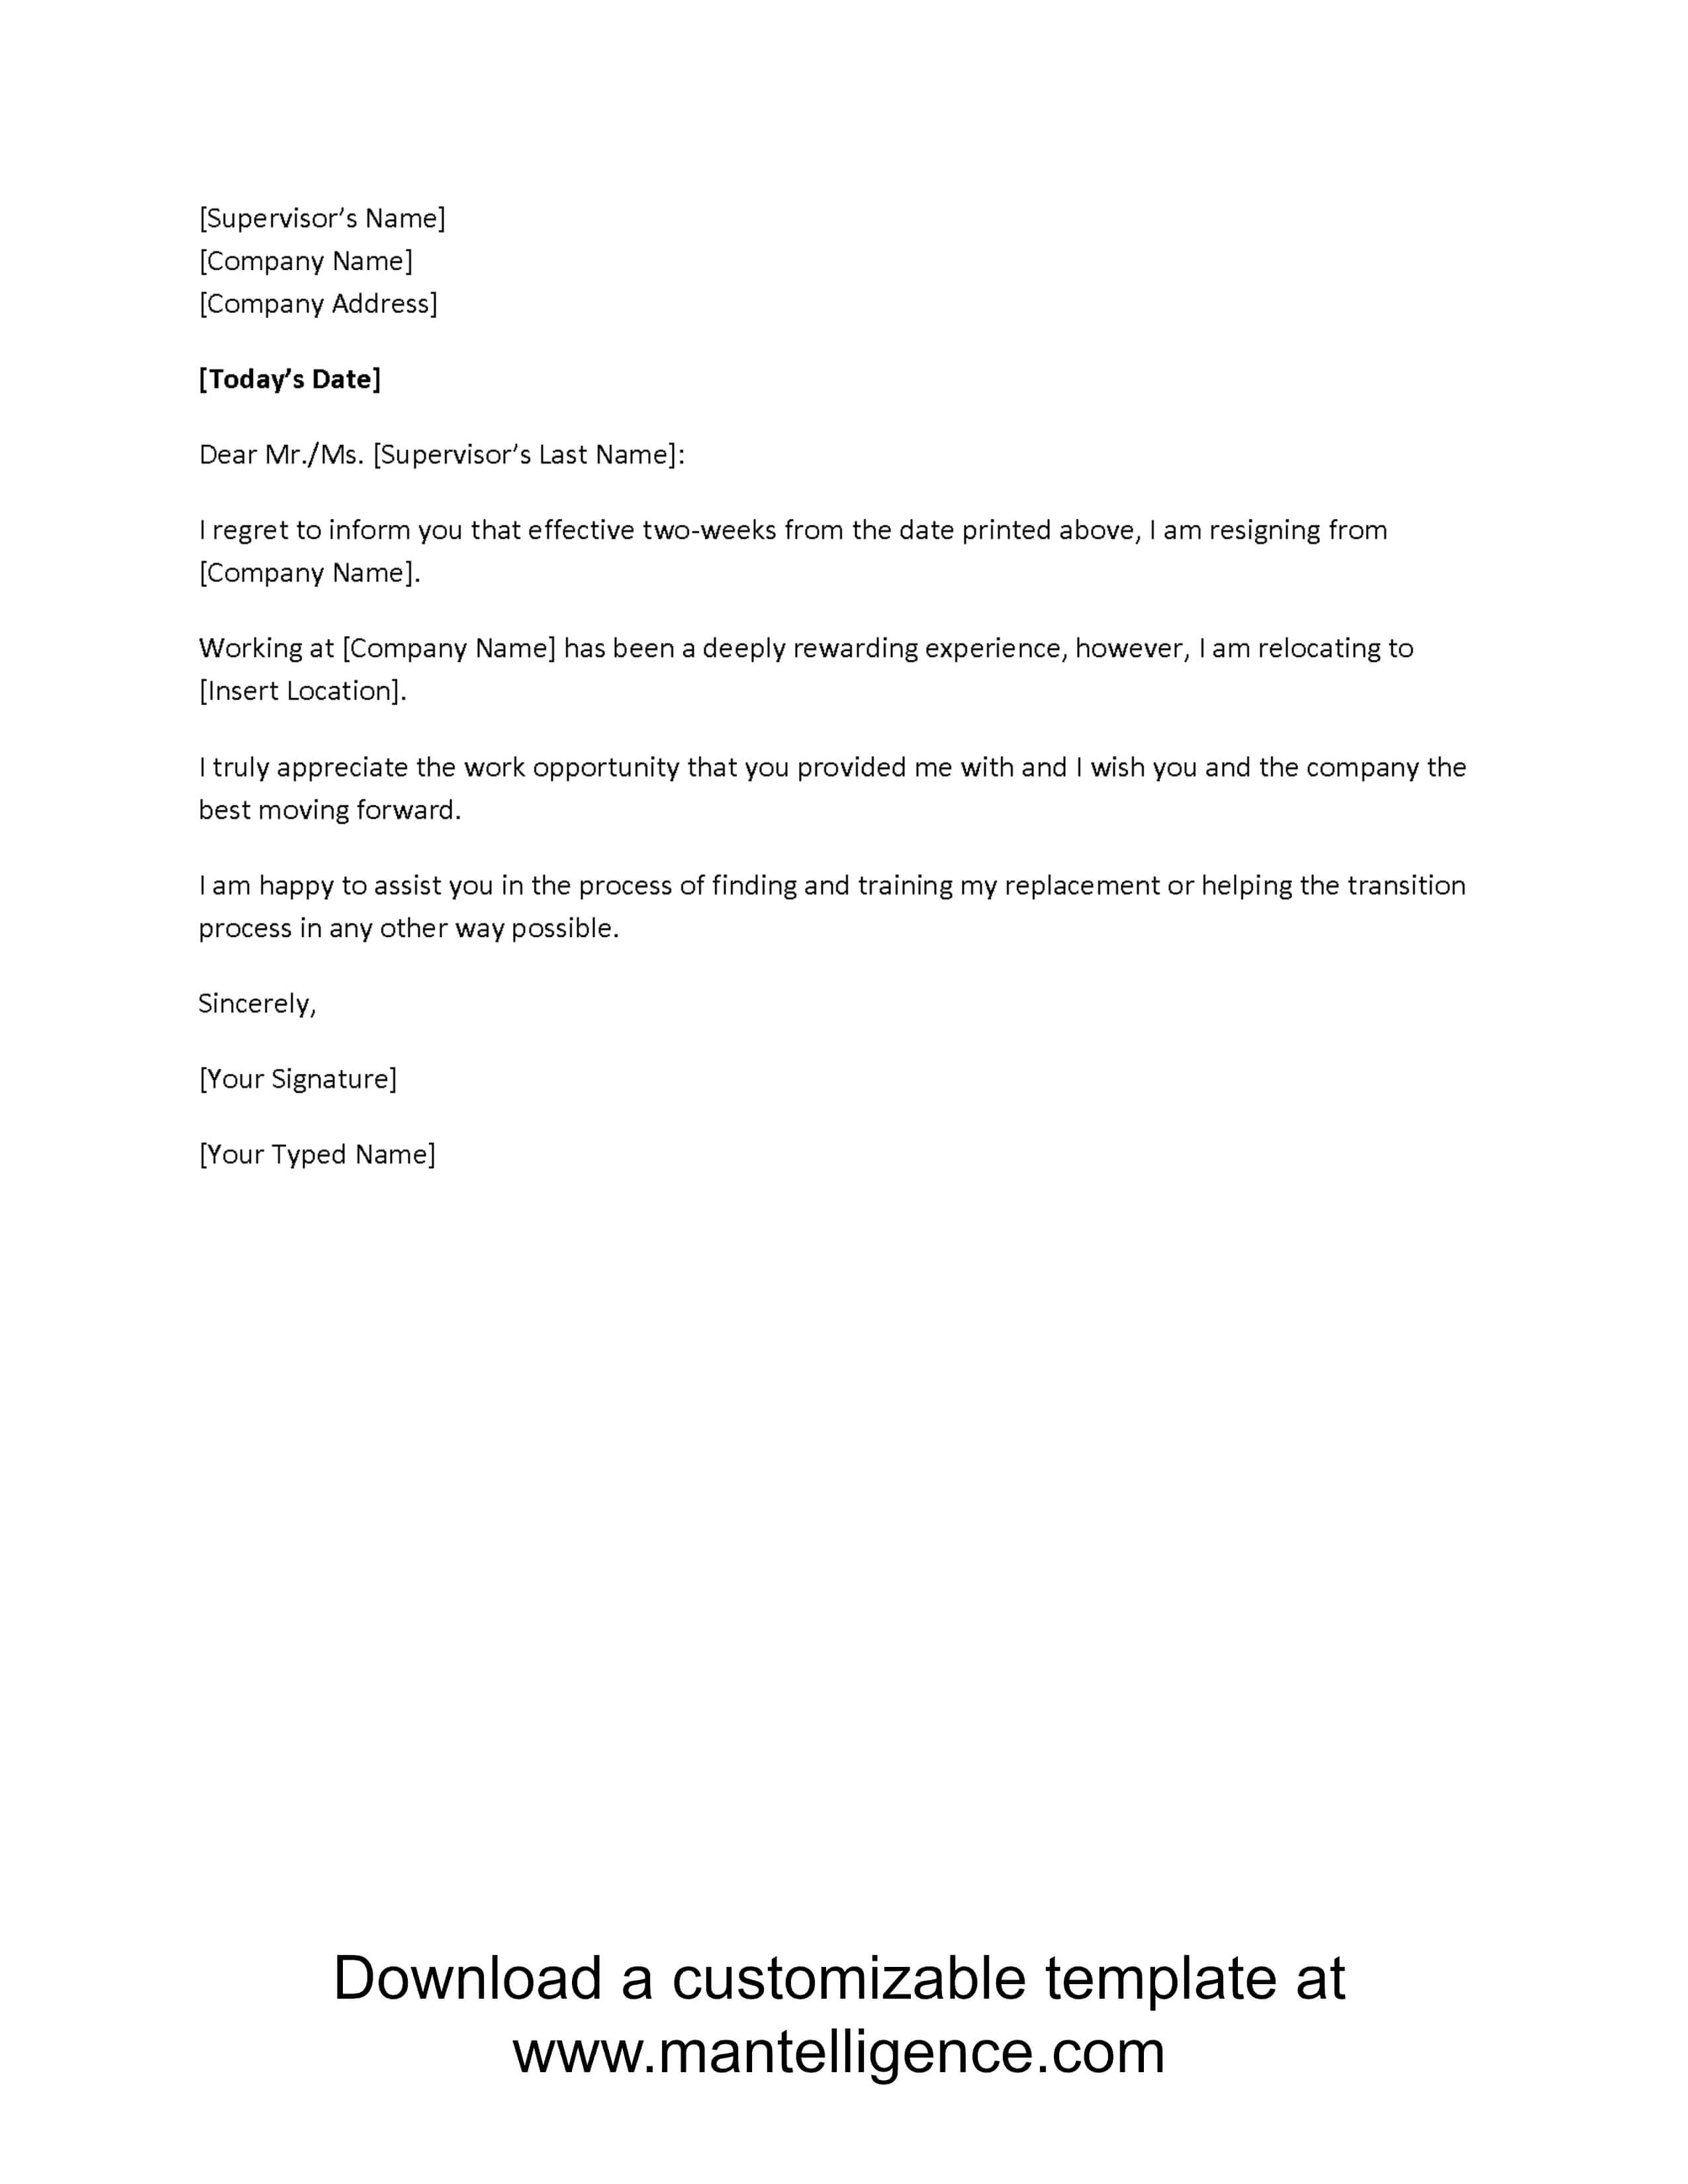 3 Highly Professional Two Weeks Notice Letter Templates Regarding Two Week Notice Template Word